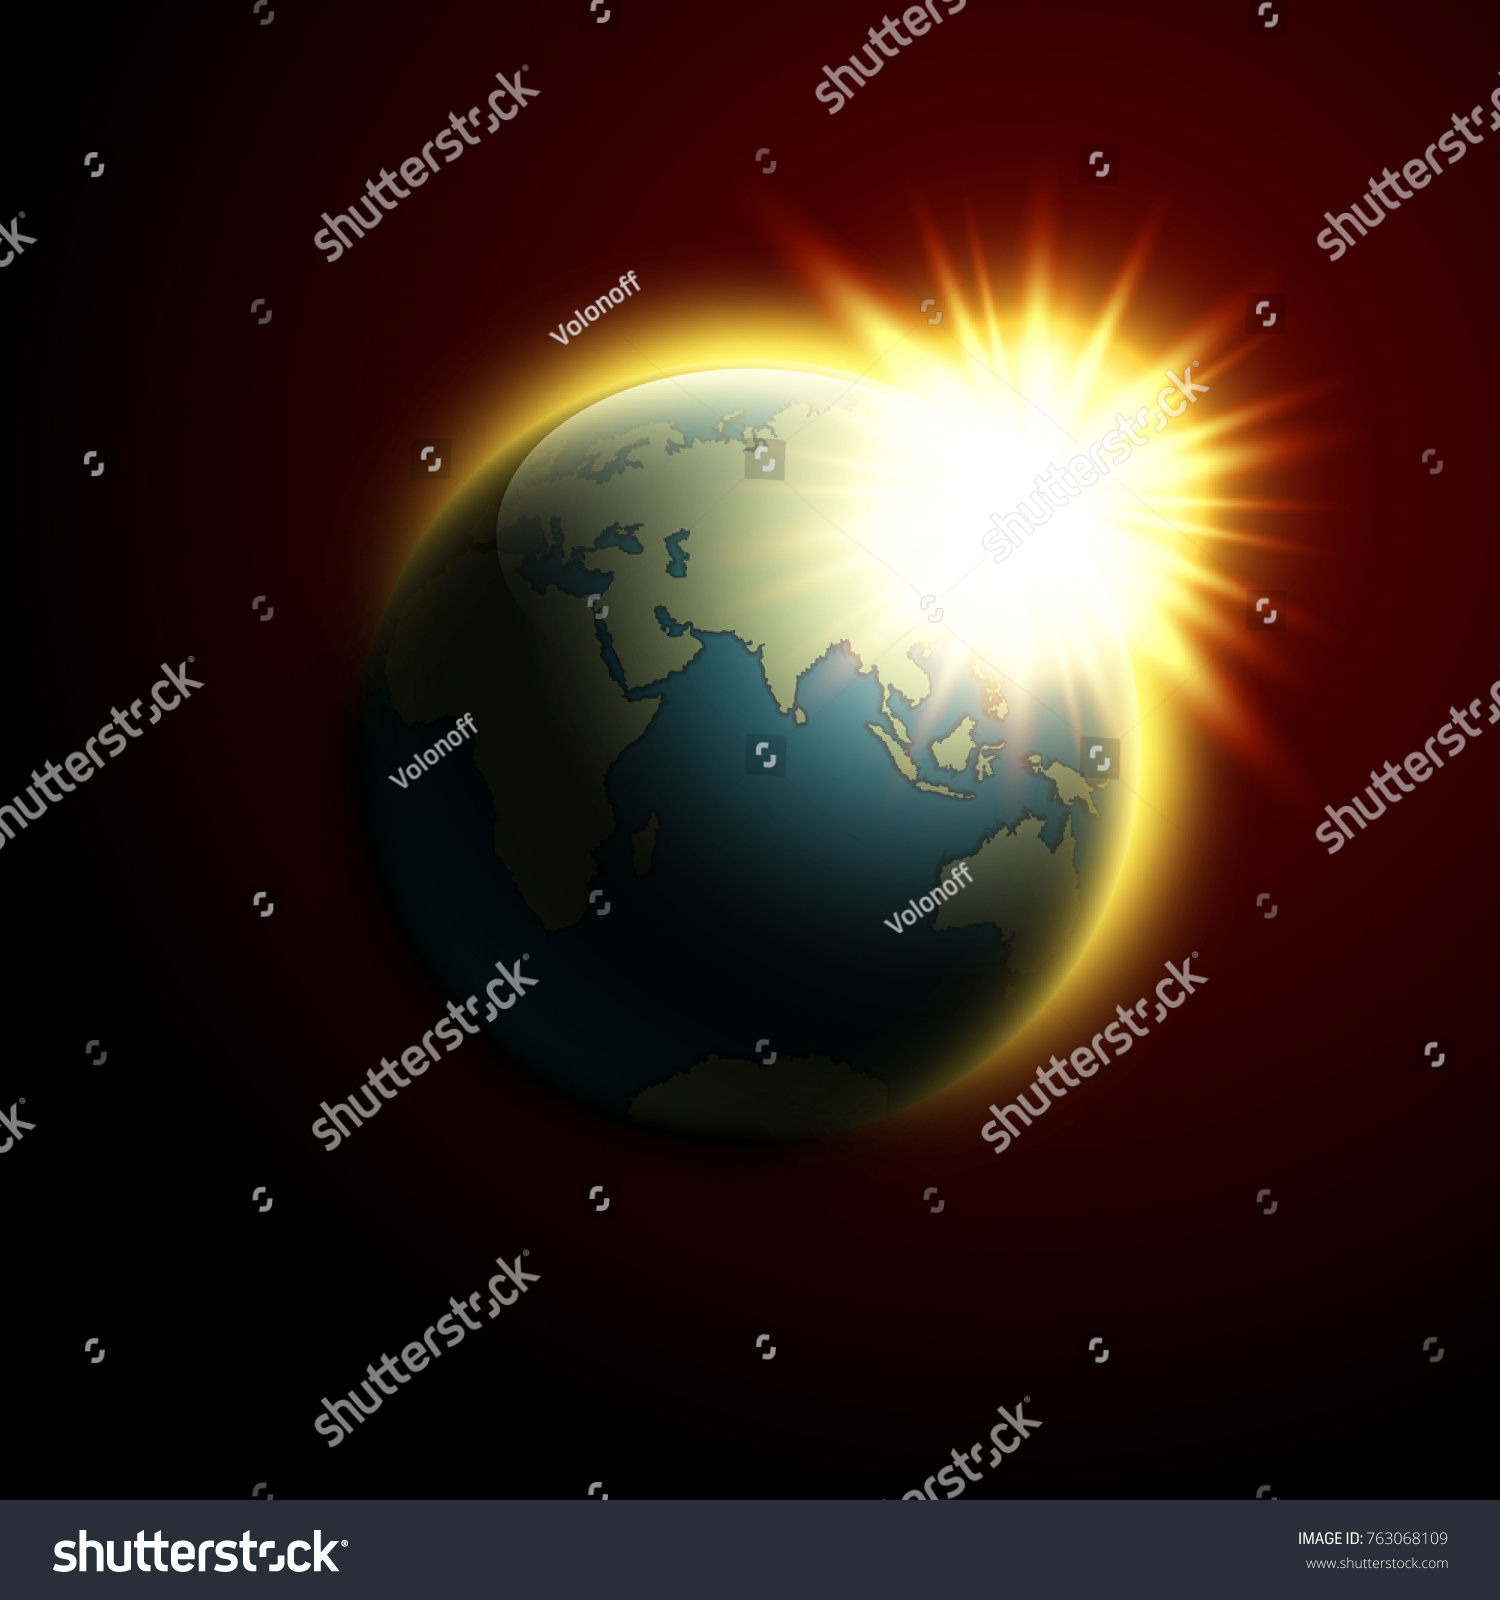 World map rising sun banner globe stock vector hd royalty free world map rising sun banner globe icon in space sunlight poster planet earth on gumiabroncs Images